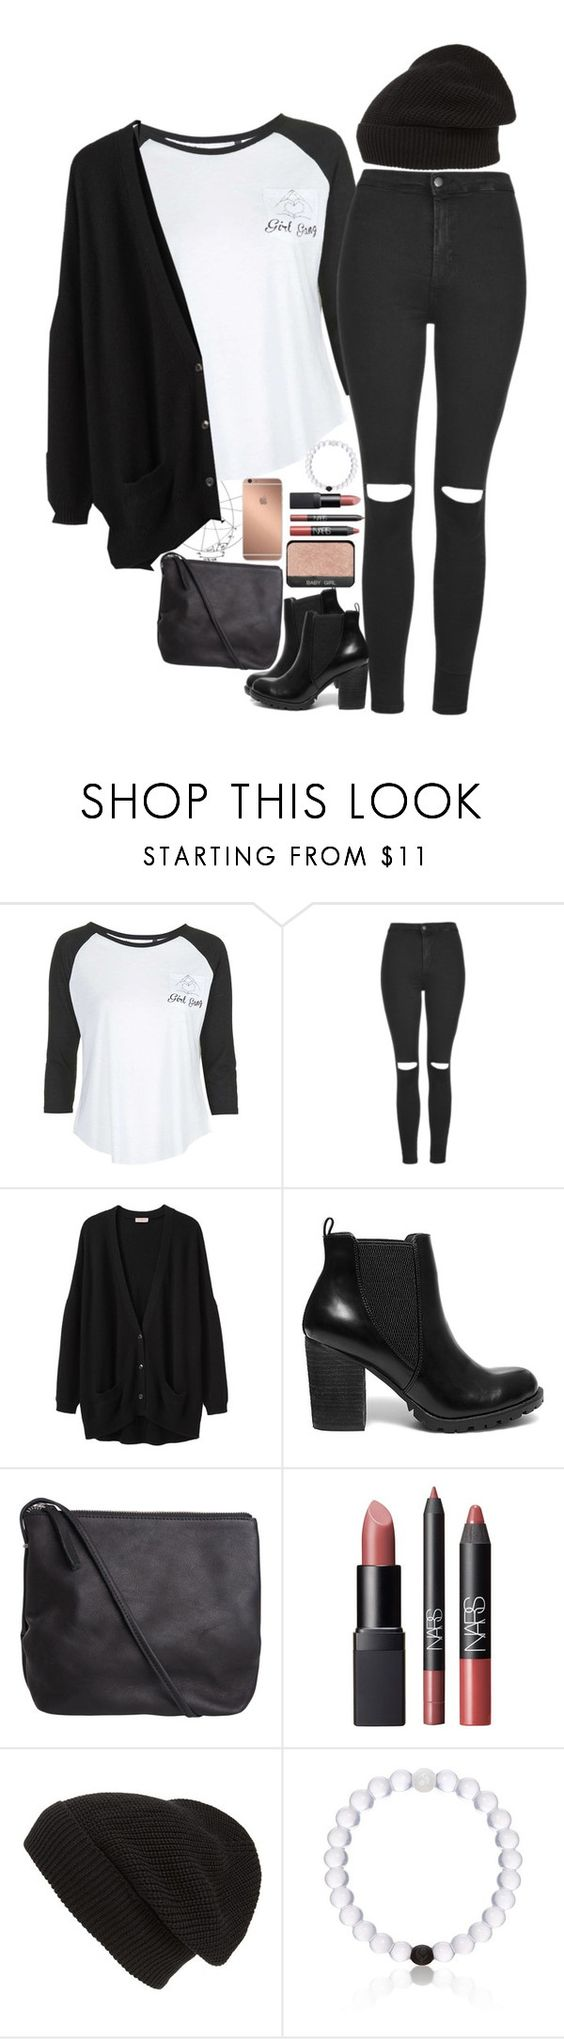 """""""Untitled #2408"""" by sisistyle ❤ liked on Polyvore featuring Tee and Cake, Topshop, Organic by John Patrick, Steve Madden, Pieces, NARS Cosmetics, Phase 3, Everest and Mura"""